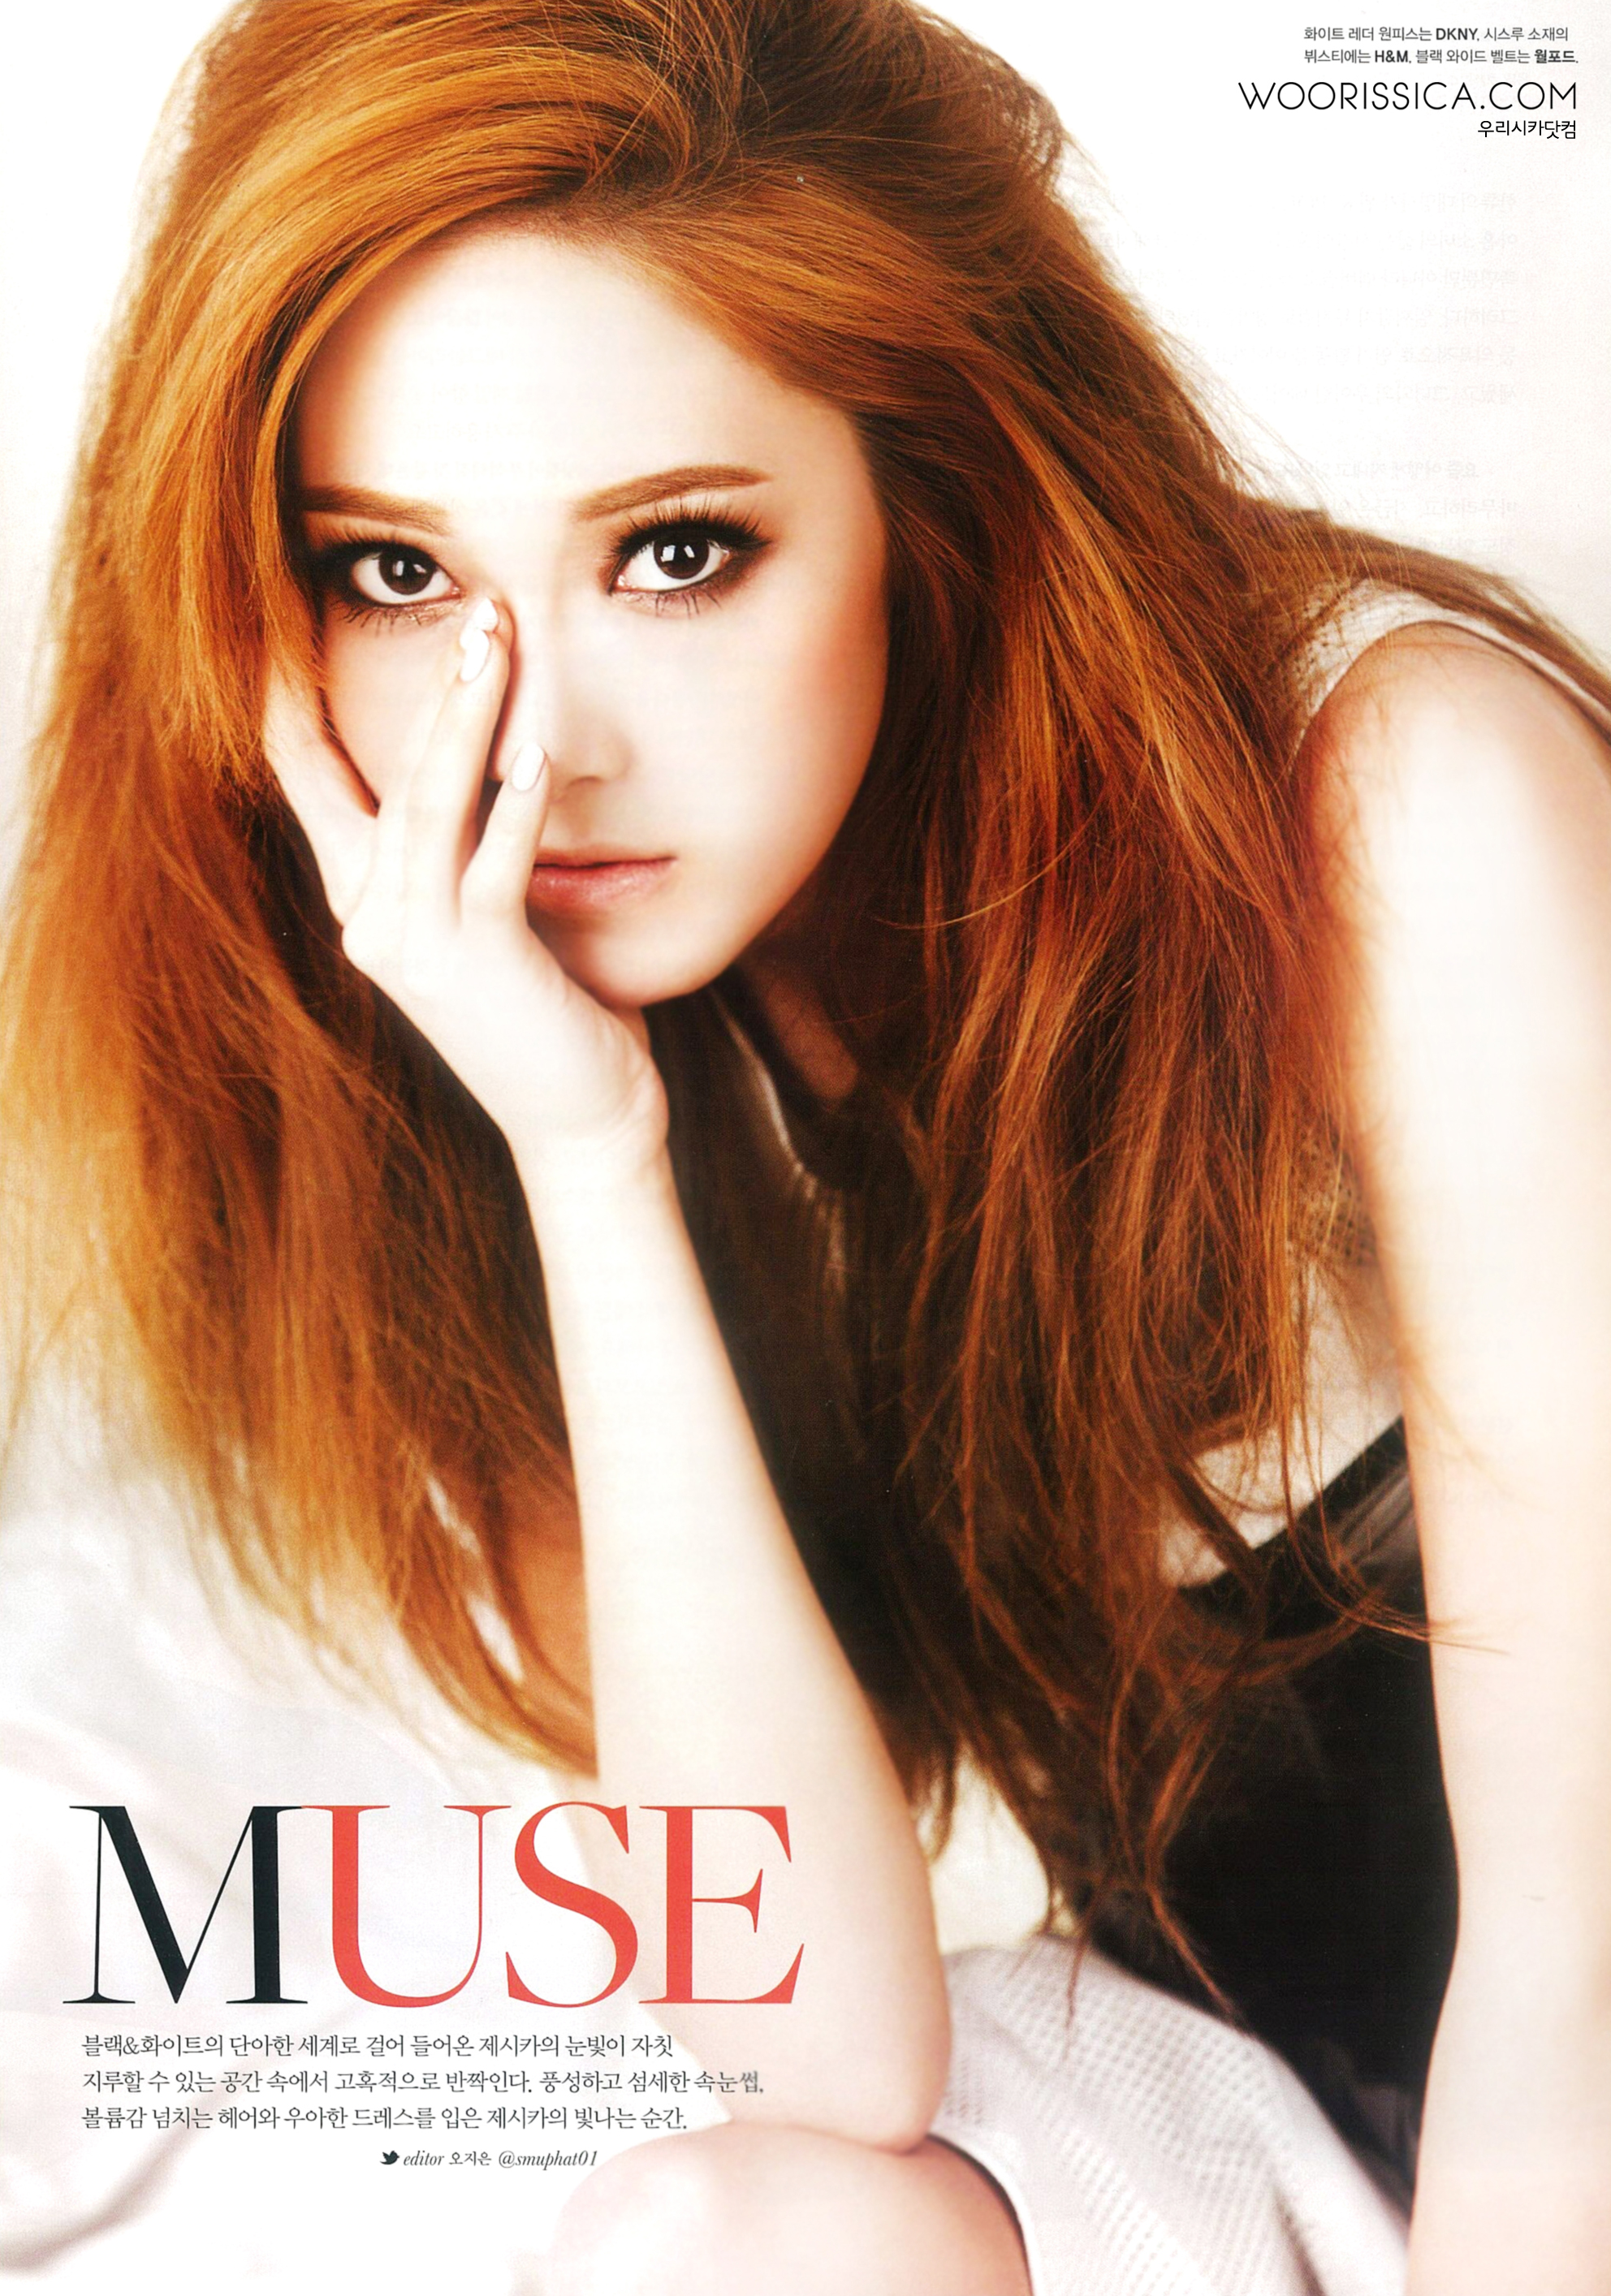 Jessica Appears in 'BEAUTY+' Magazine for a Photoshoot and Interview!